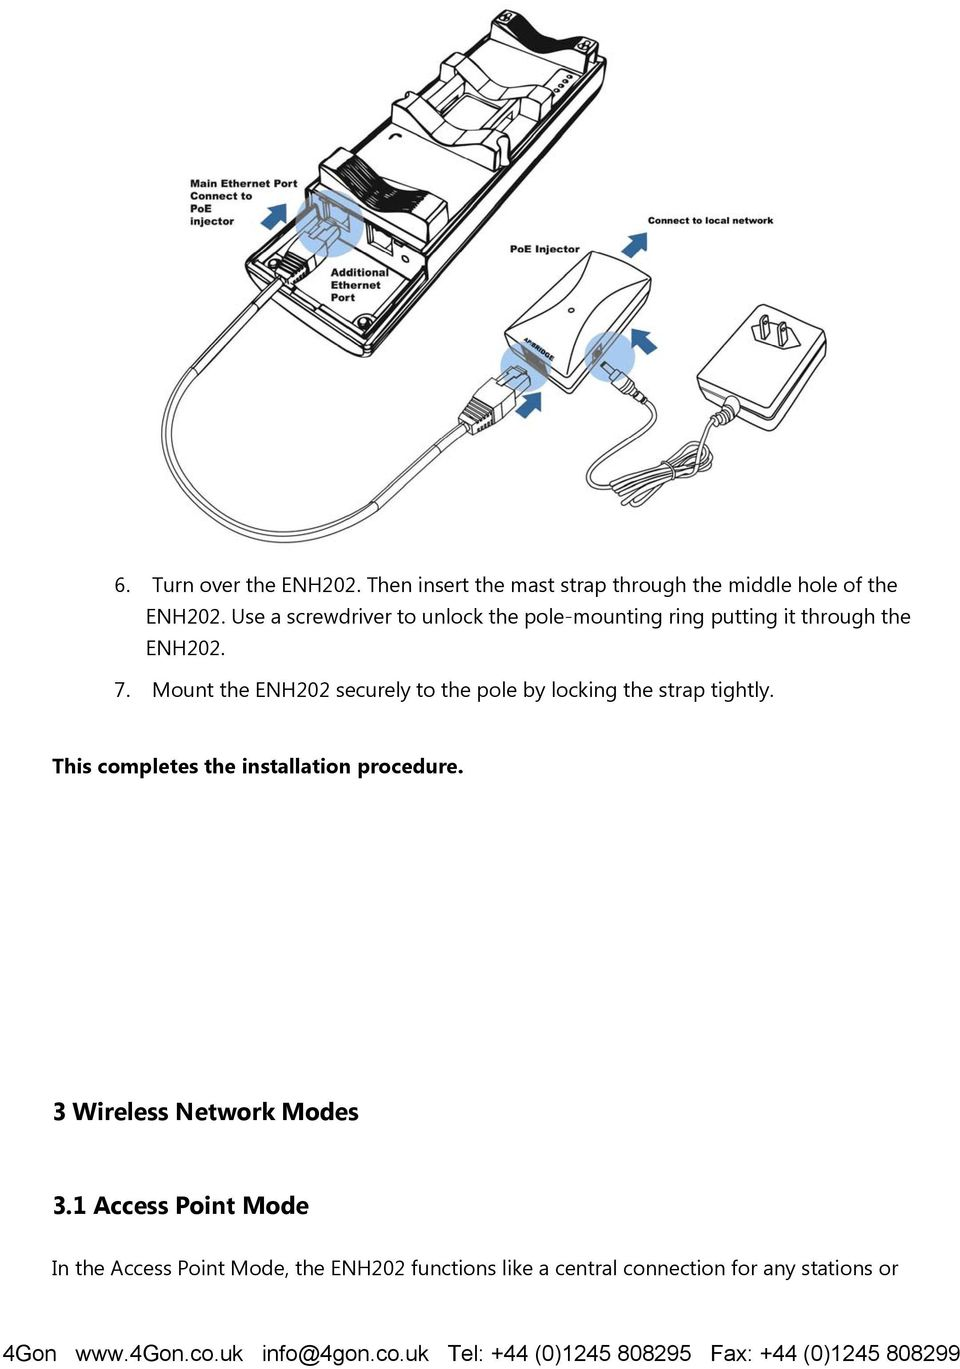 Wireless Access Point Client Bridge Pdf Diagram Besides Router Hook Up As Well Poe Ether Mount The Enh202 Securely To Pole By Locking Strap Tightly